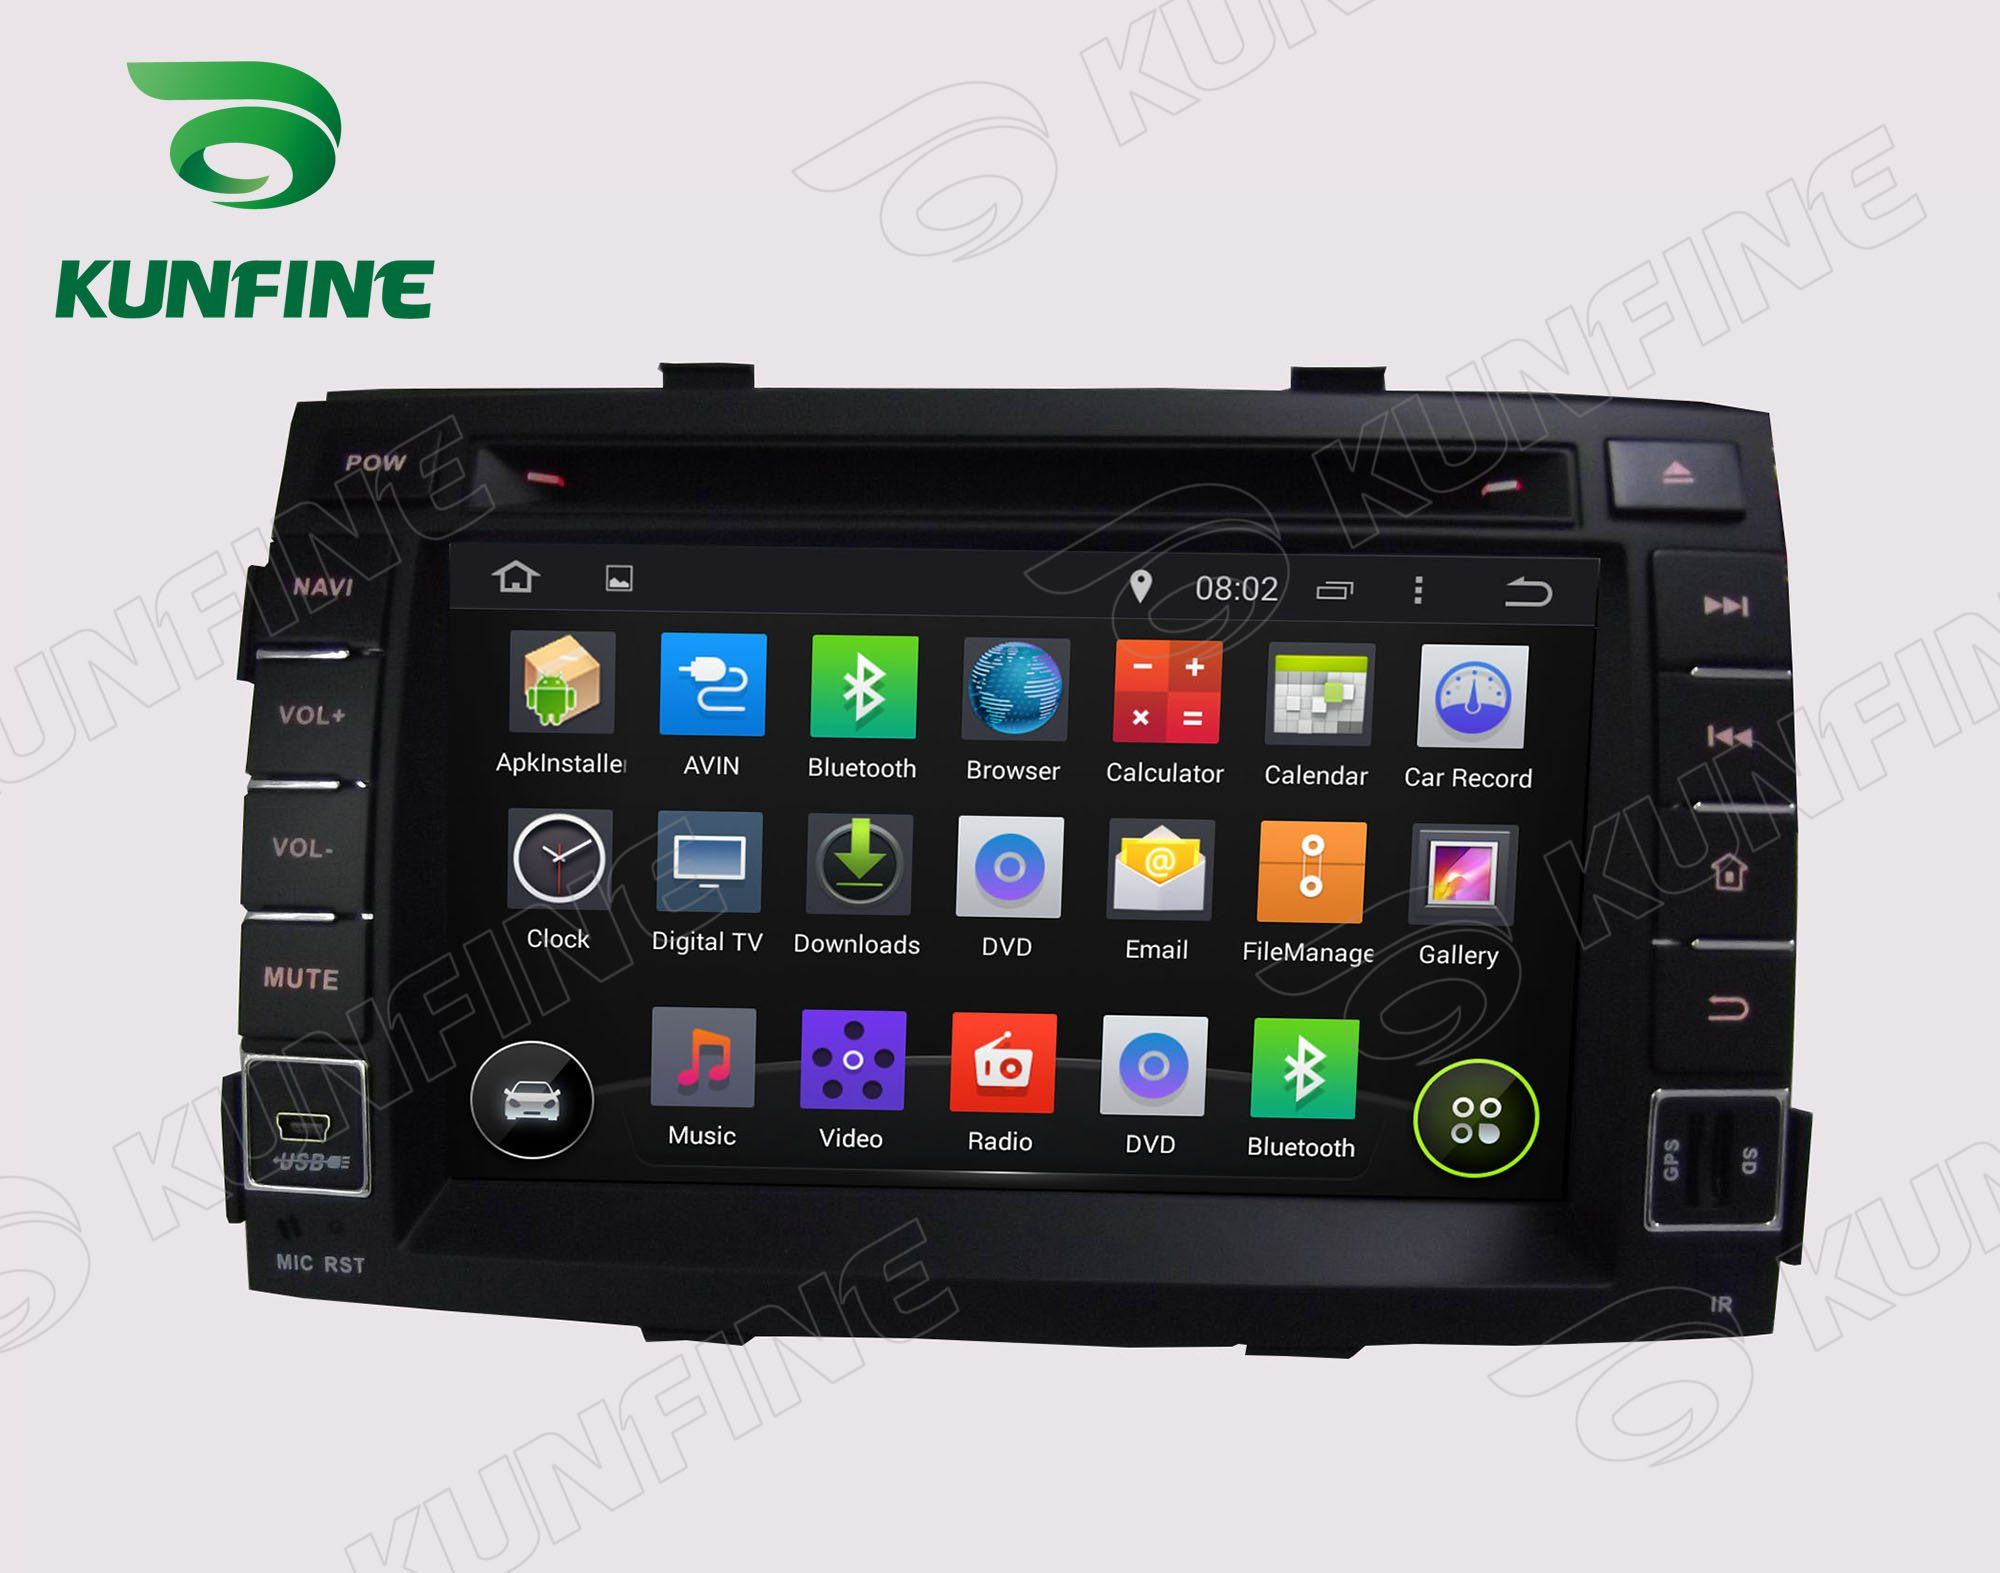 Audi A3 Doppel Din Autoradio Gps Navigationsysteme Mit Touchscreen 3d Gps Navigation Dvd Navi Multimedia Play With Images Touch Screen Car Stereo Car Stereo Gps Navigation